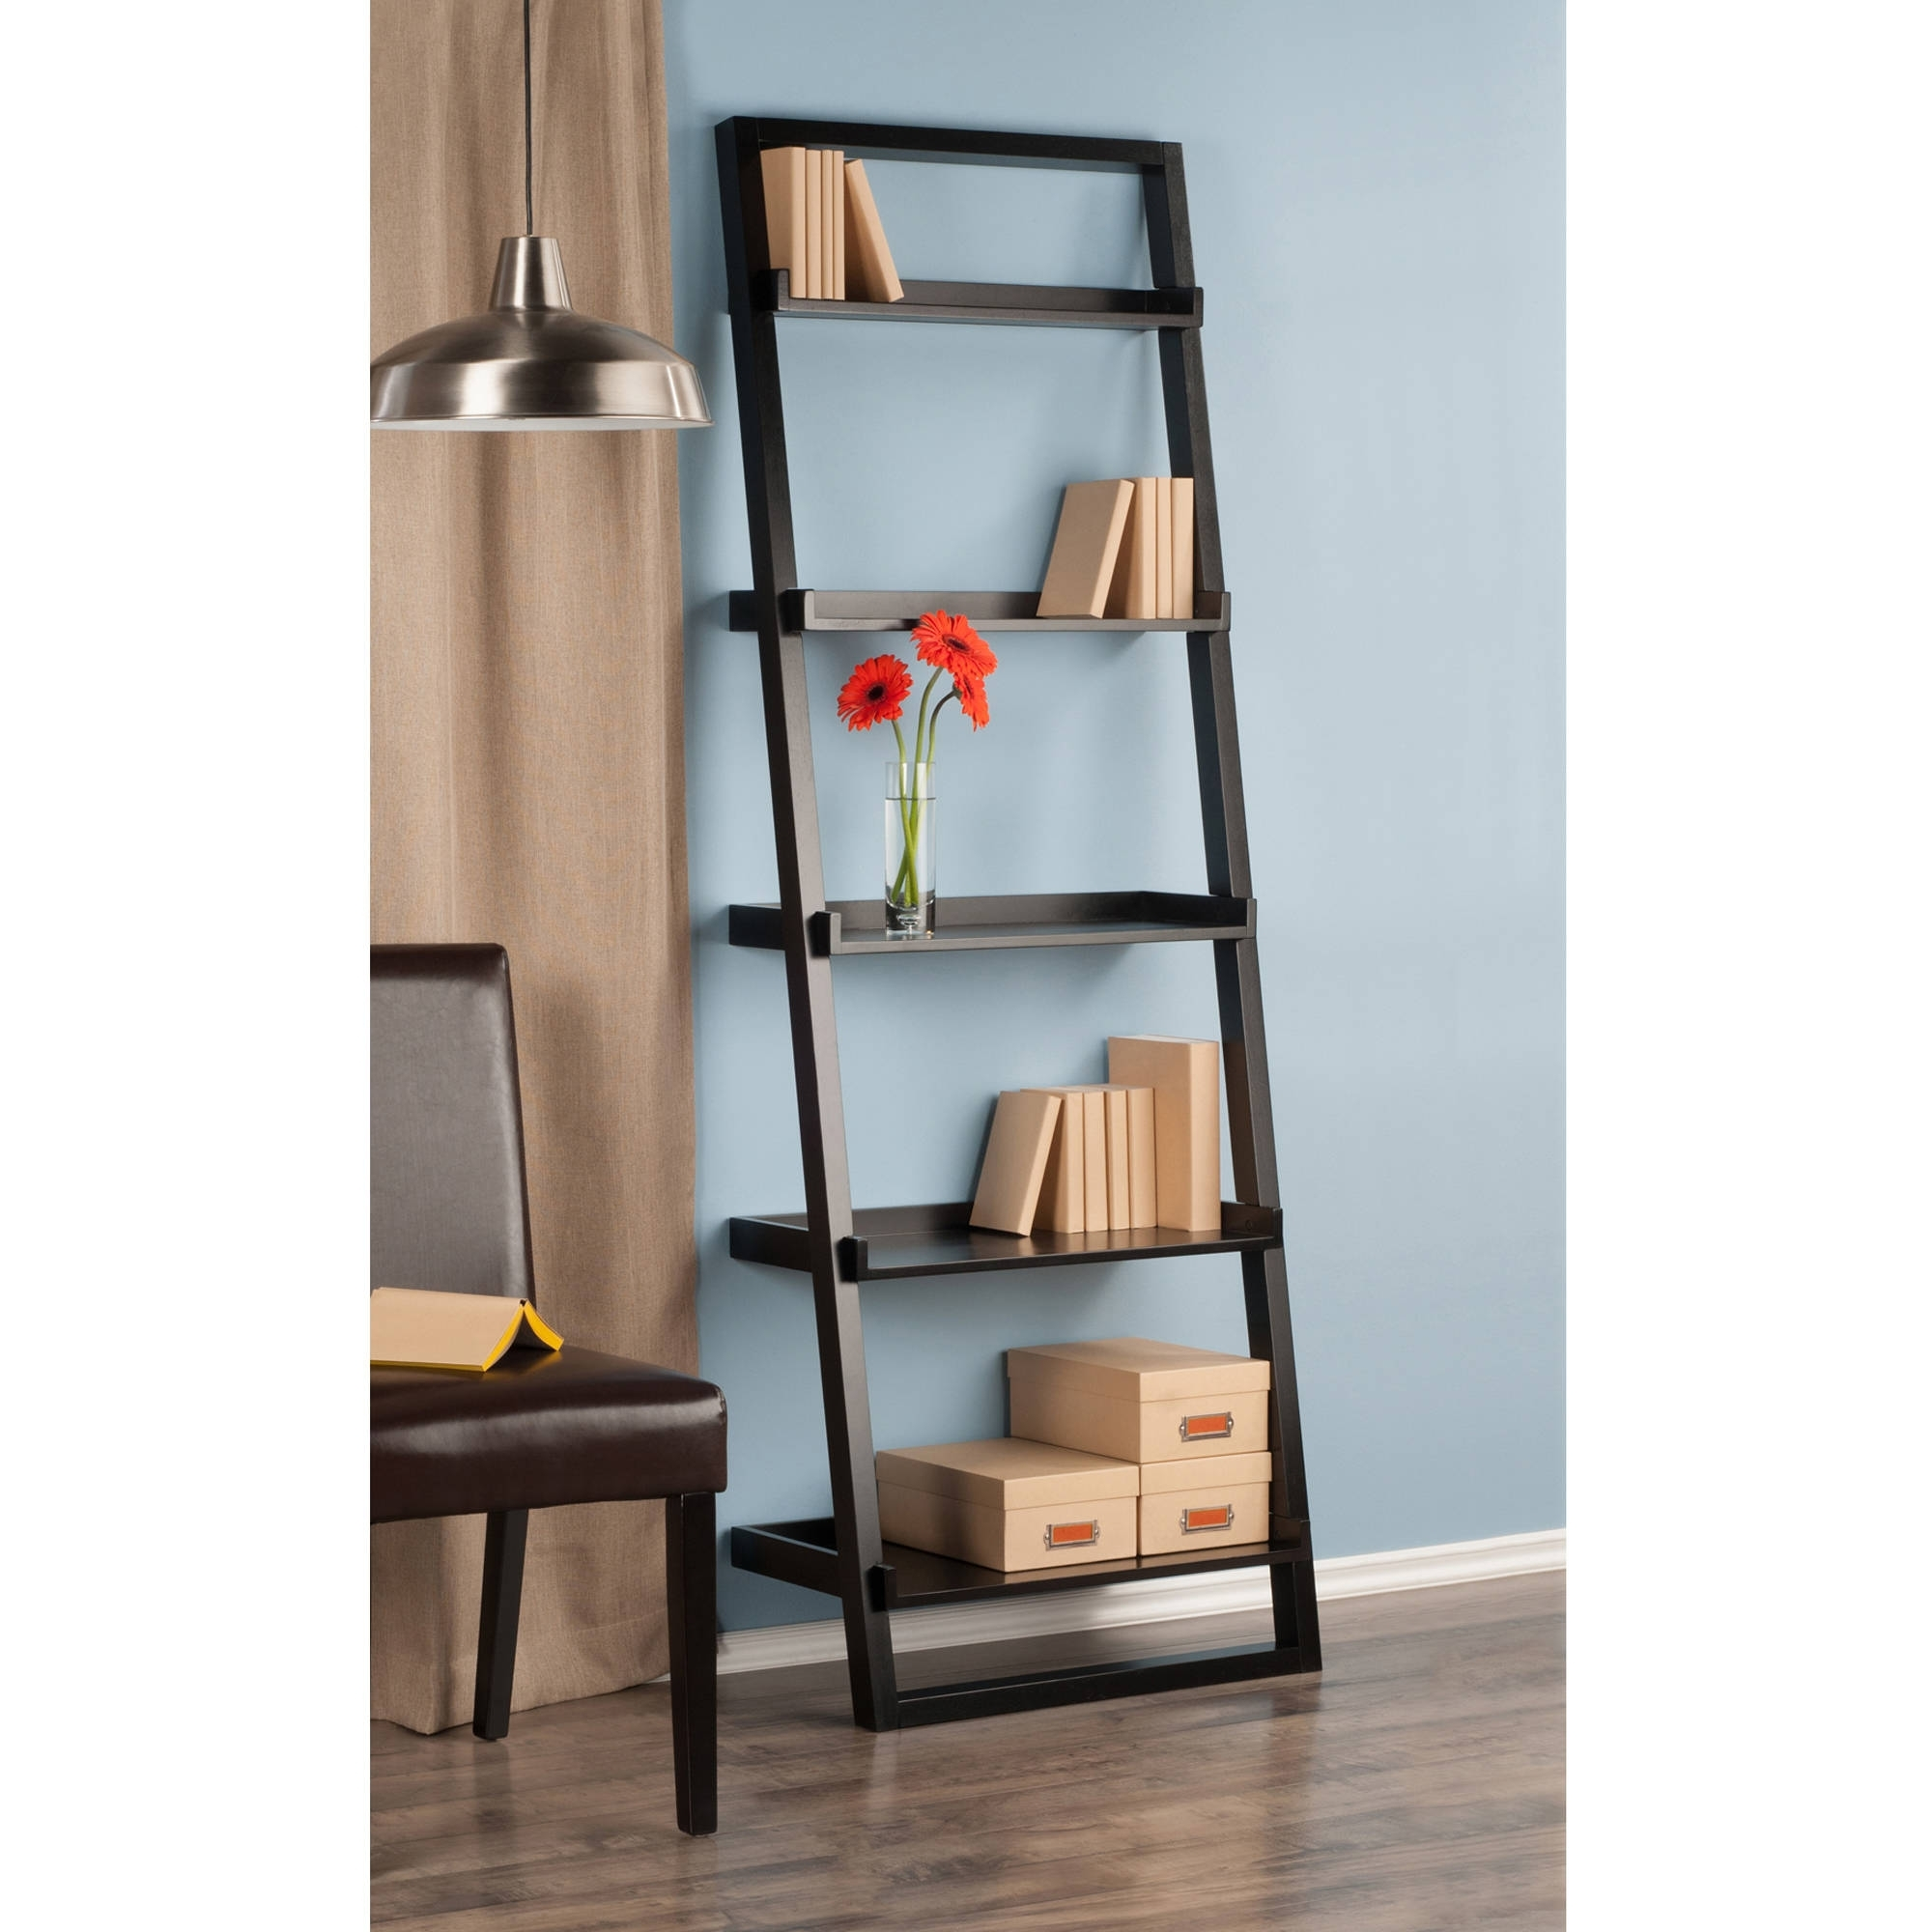 Crate And Barrel Leaning Bookcases Intended For Recent Leaning Wall 5 Shelf Bookcase, Black – Walmart (View 10 of 15)